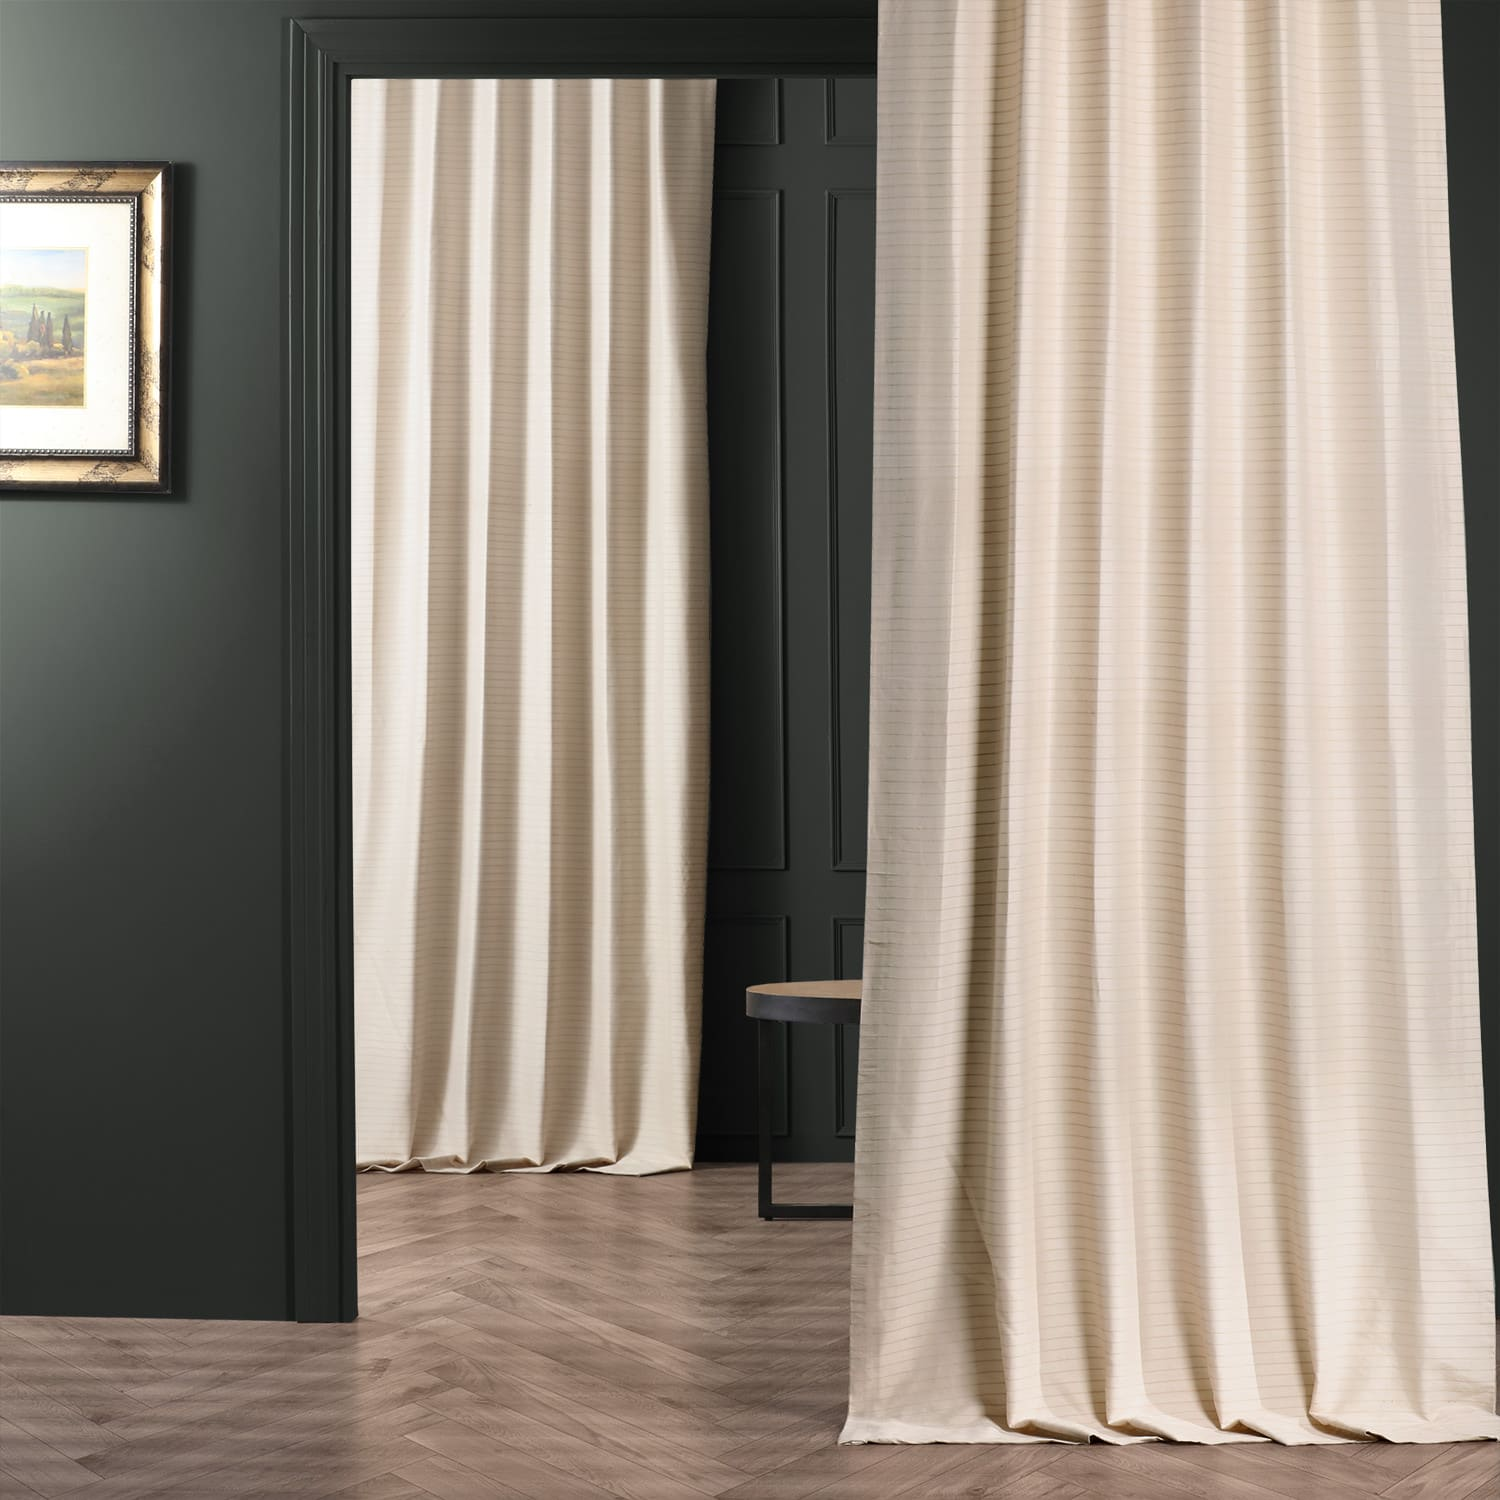 Champagne Beige Hand Weaved Cotton Curtain